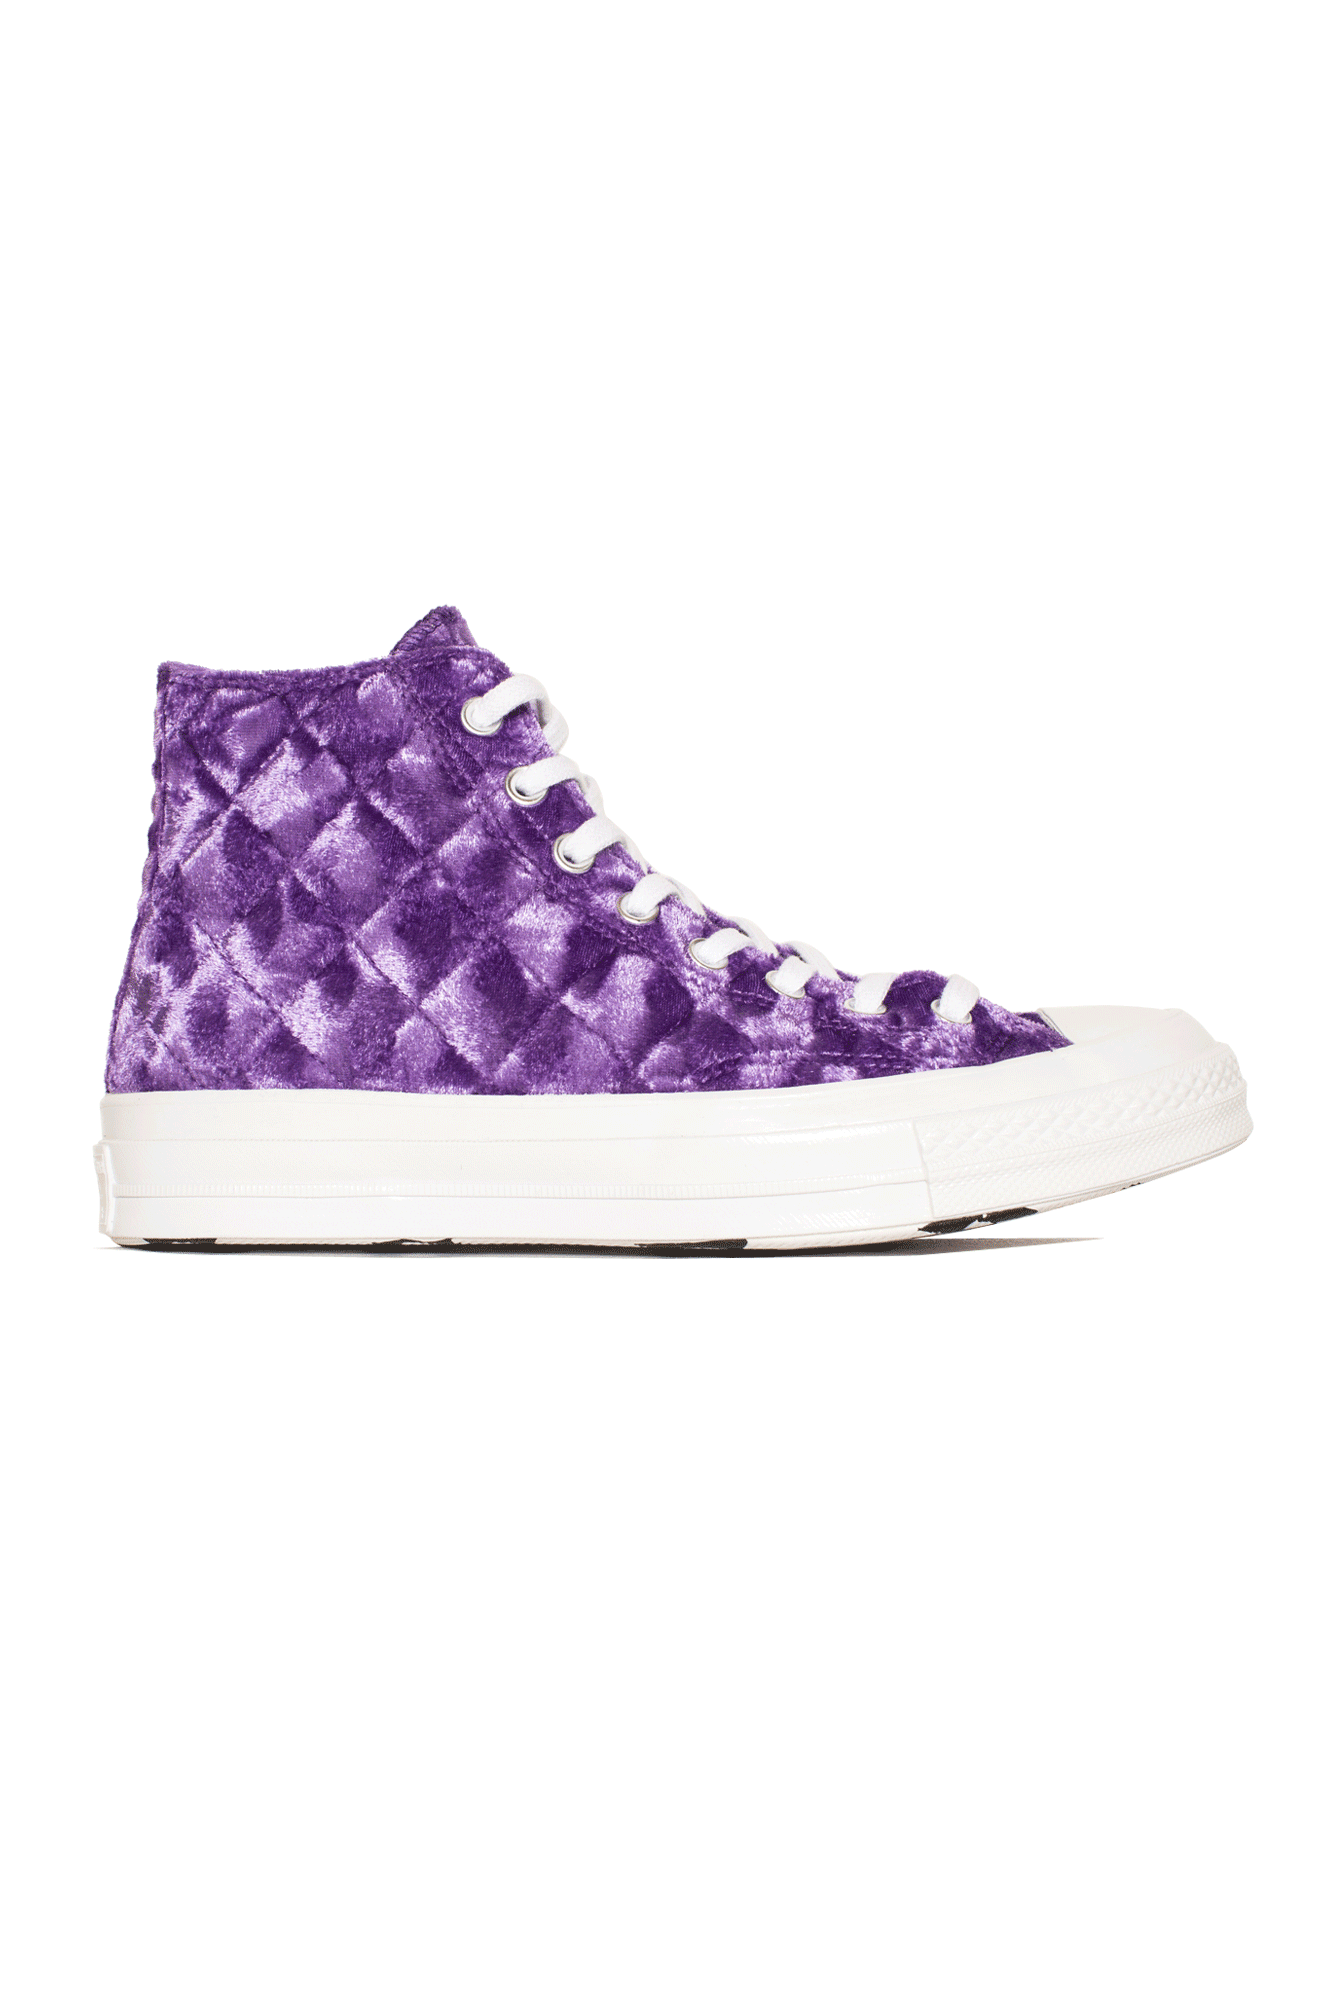 Converse Sneakers TTC Quilted Velvet Purple 165600C#000#C0014#5 - One Block Down